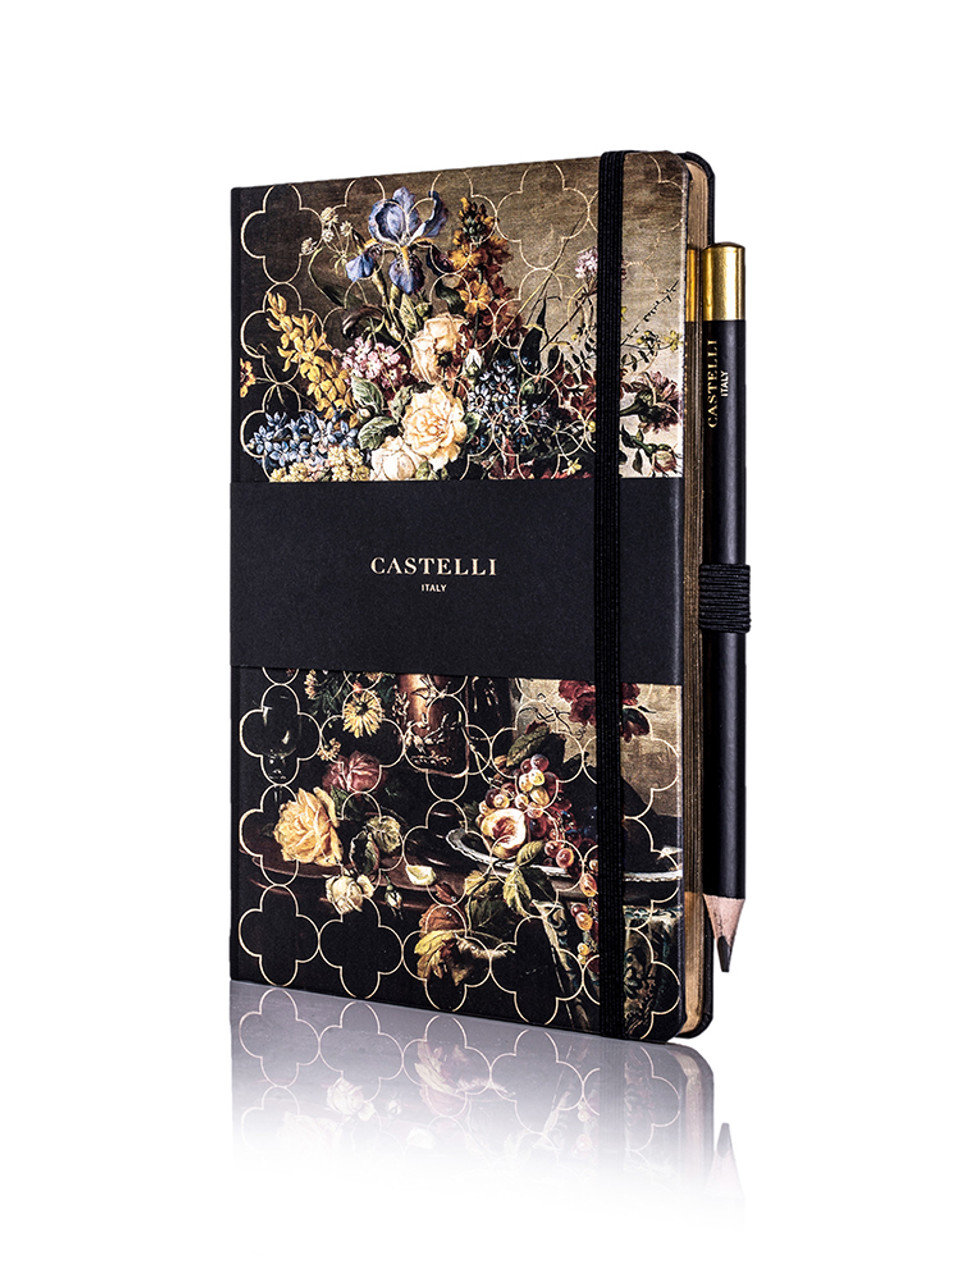 Castelli Vintage Floral notebook, Rose